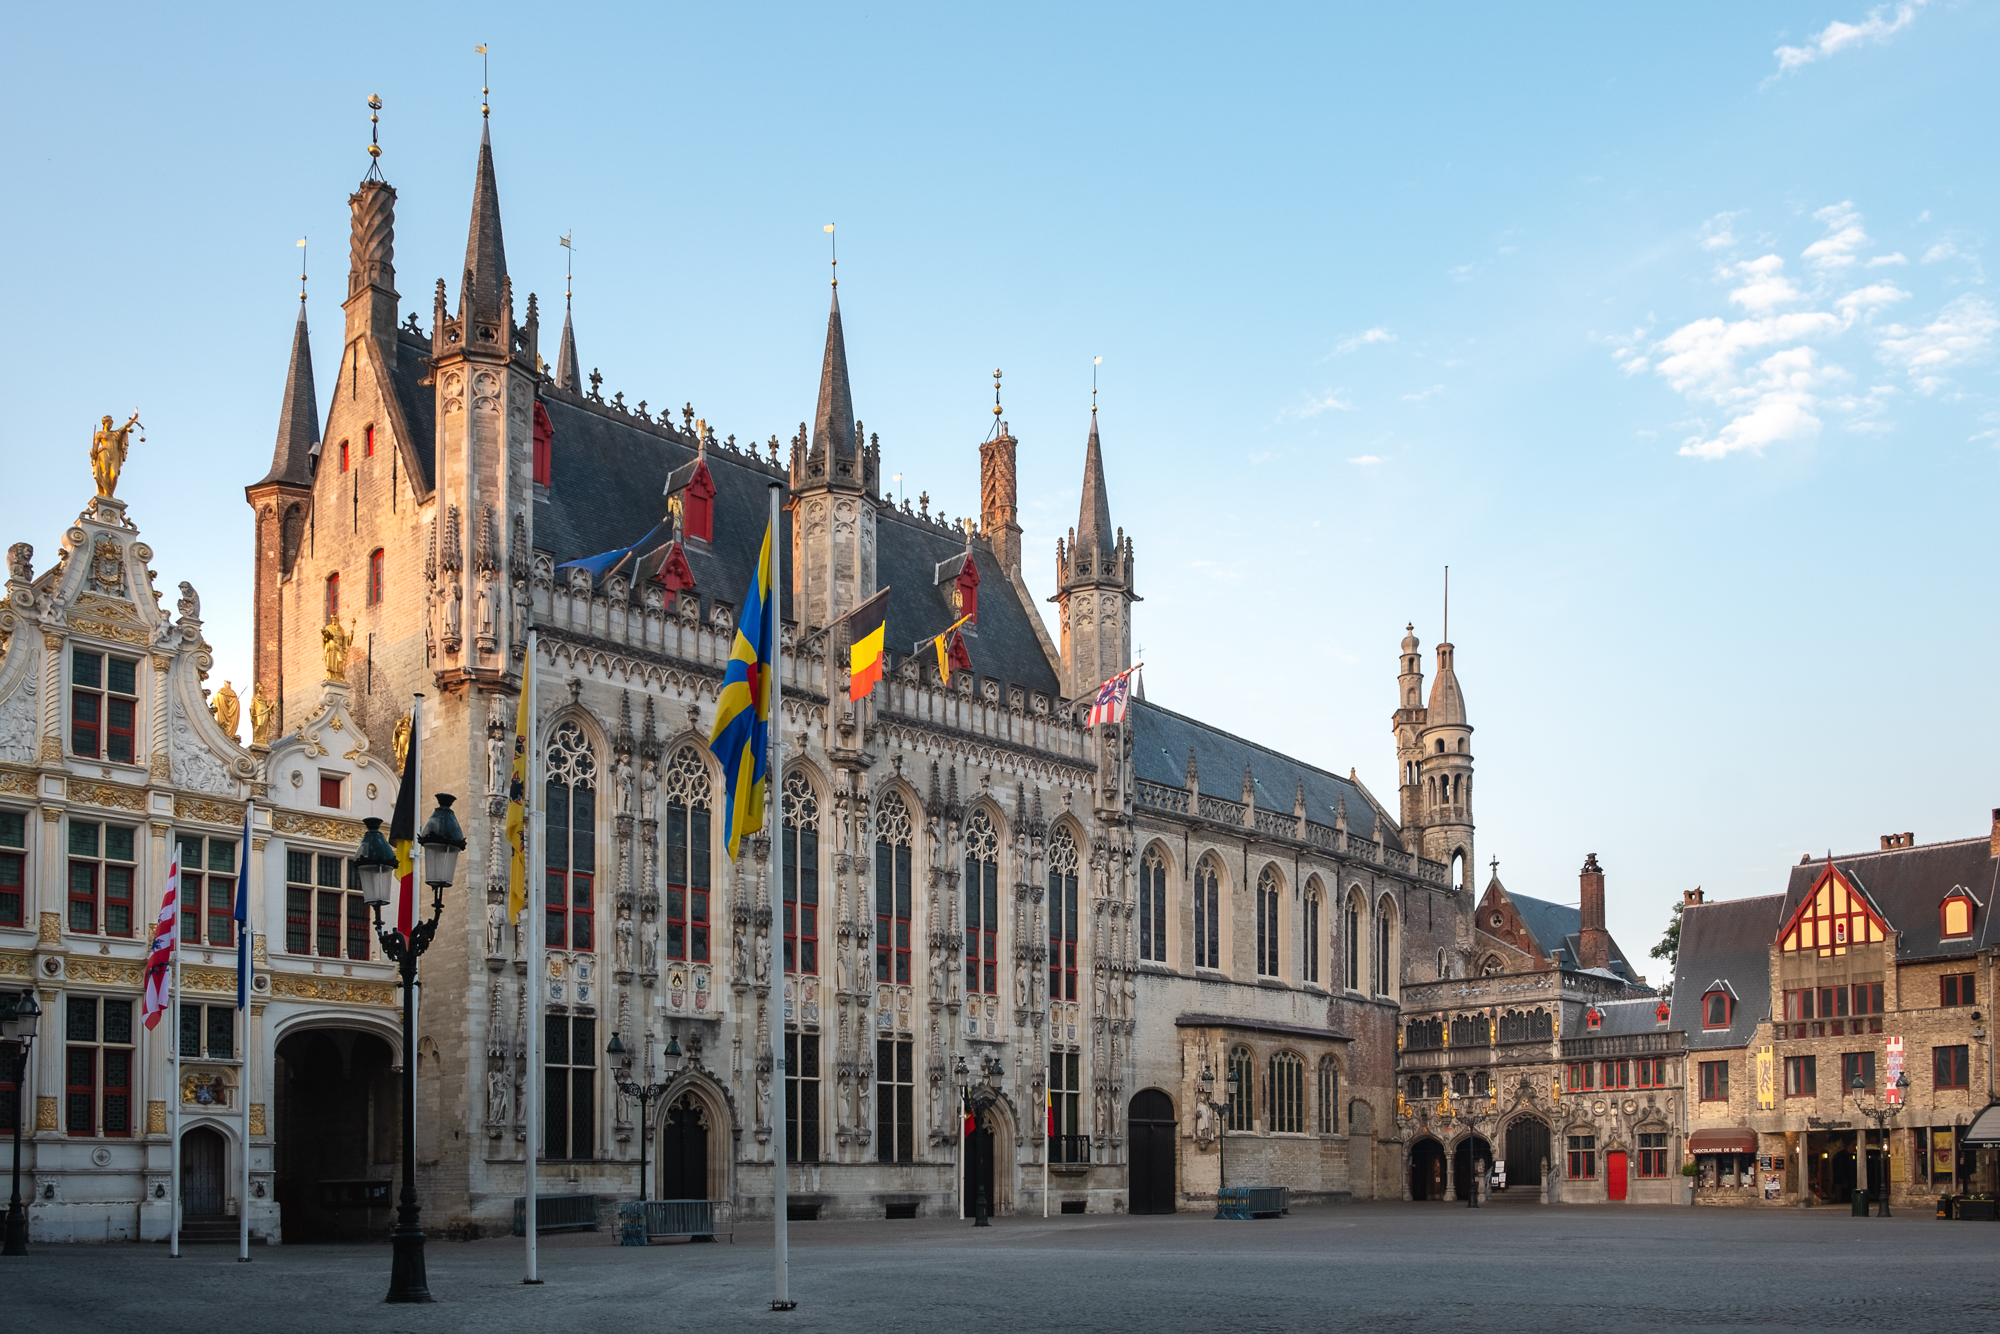 A photo of Town Hall on Burg Square in Bruges, Belgium taken by Trevor Sherwin